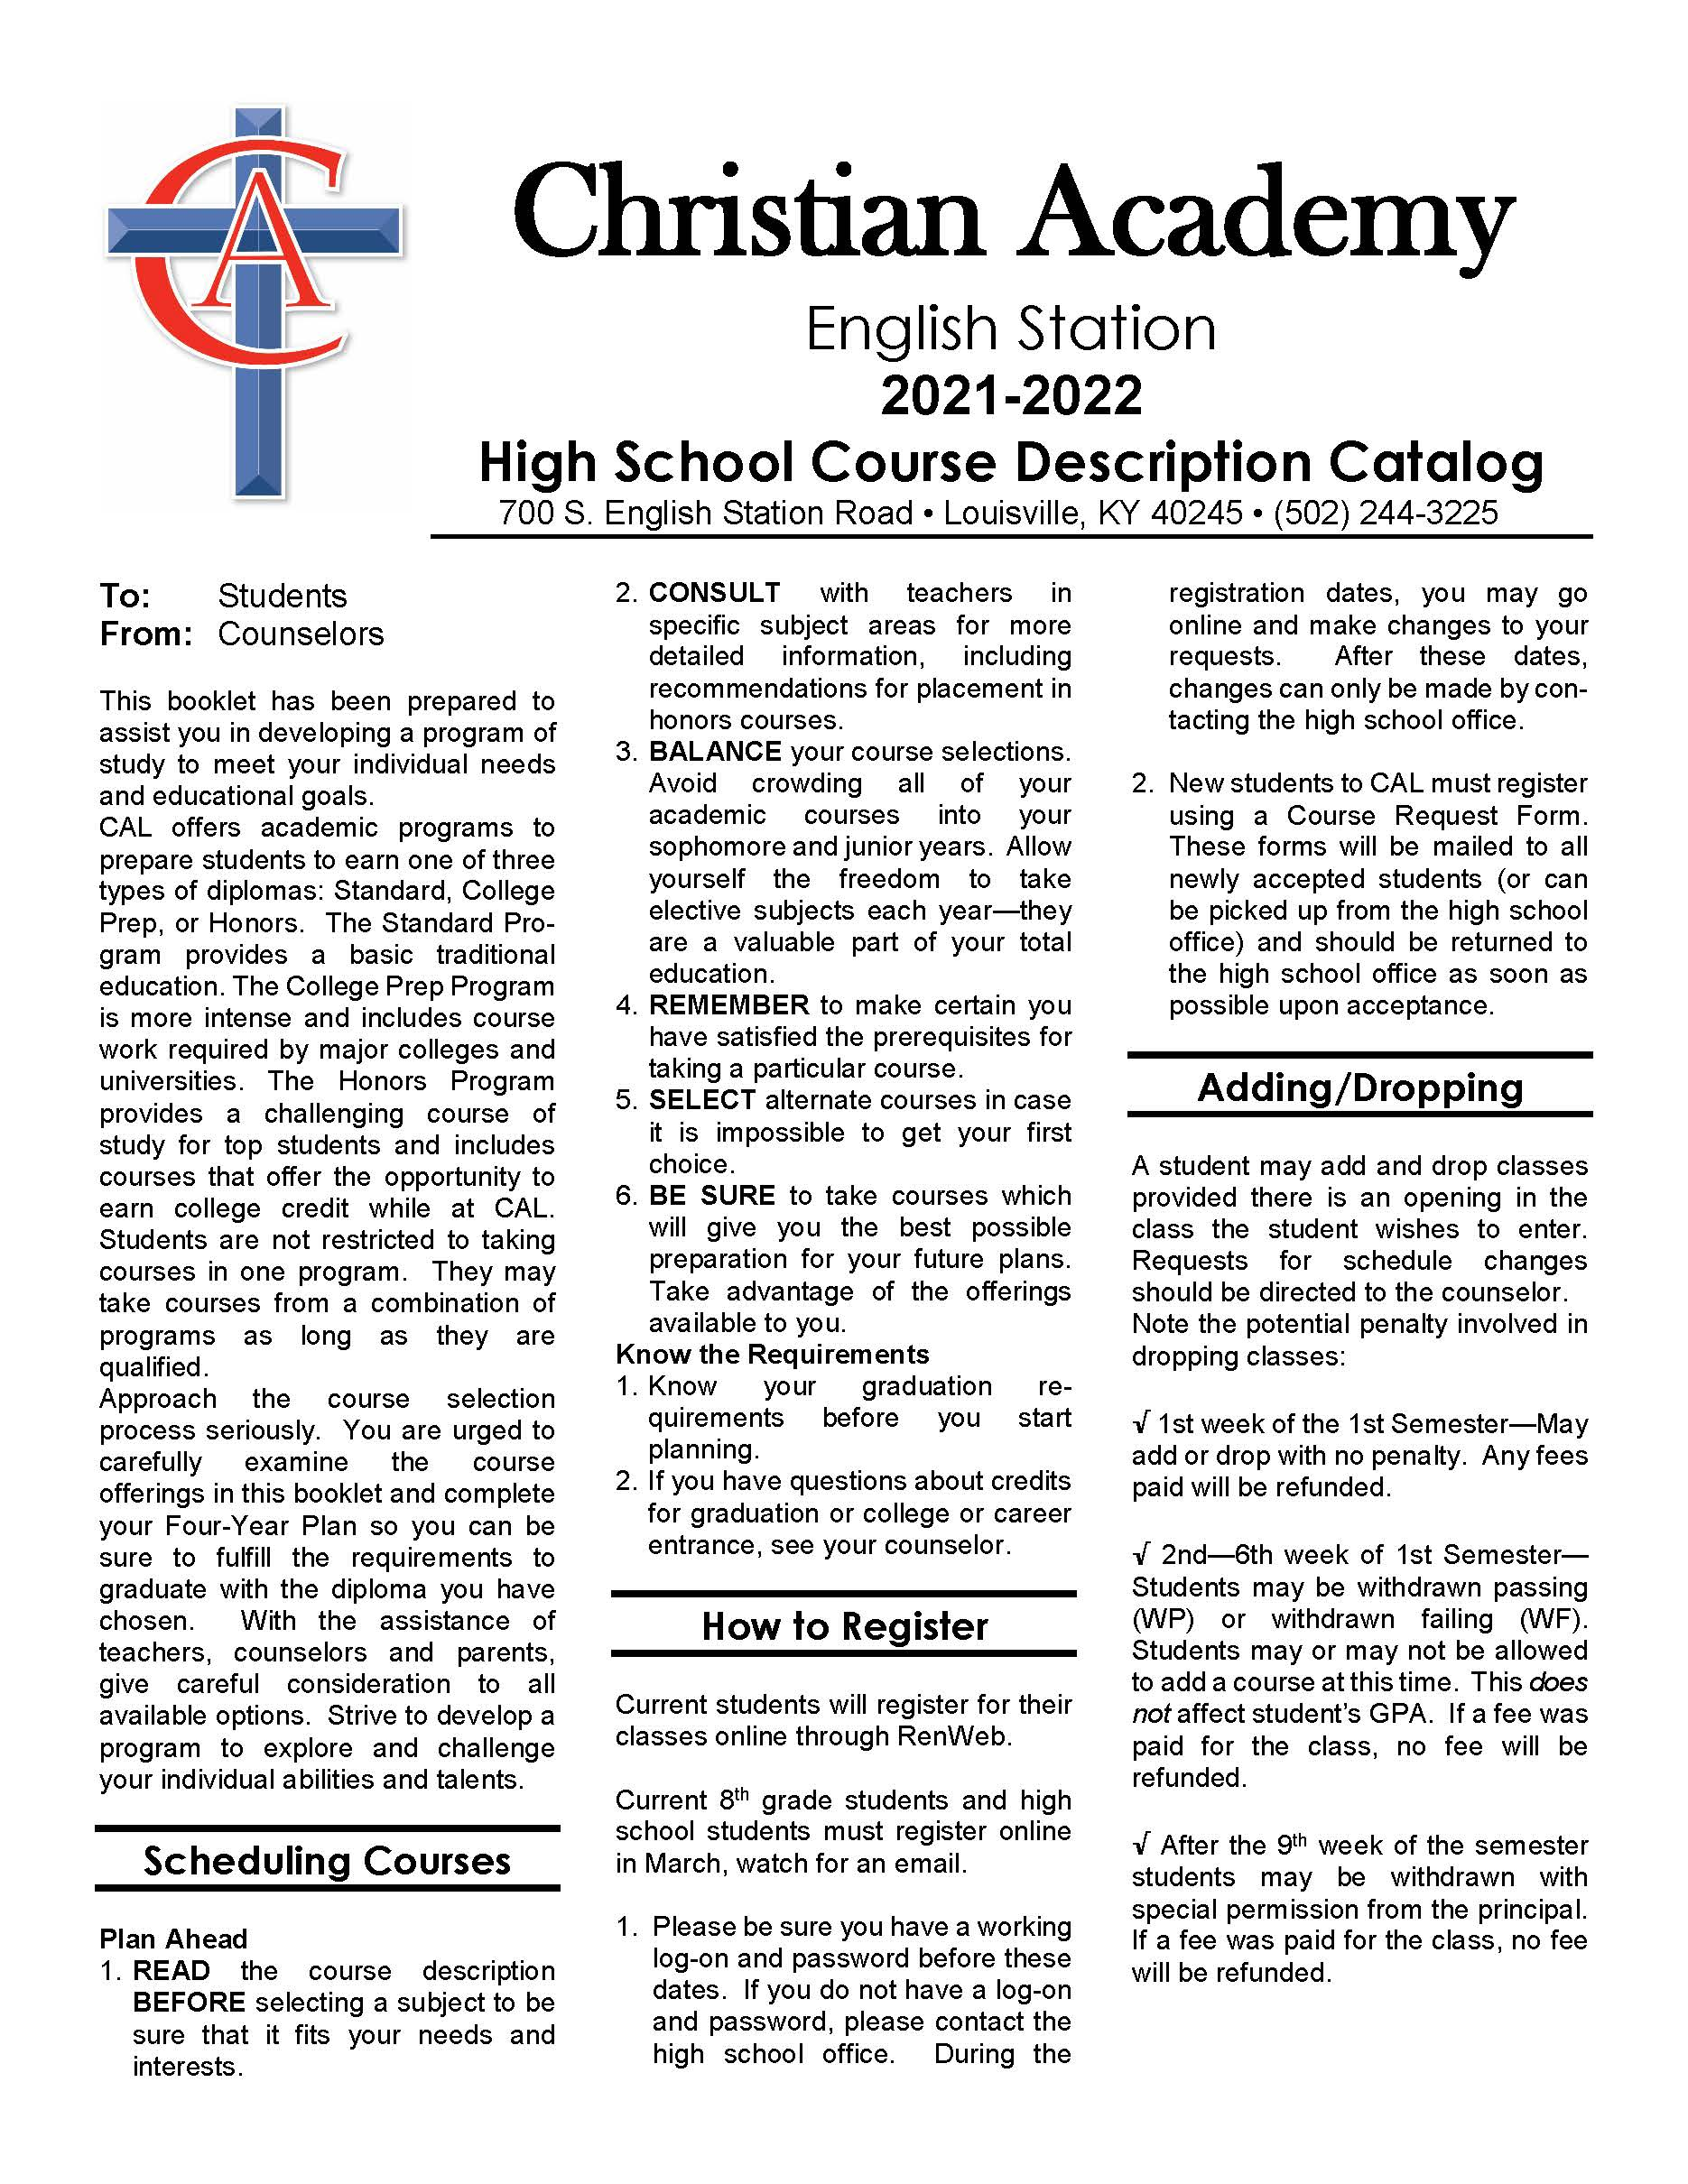 Christian Academy School System | Christian Academy of Louisville | English Station High School | Course Description Catalog | 2021-2022